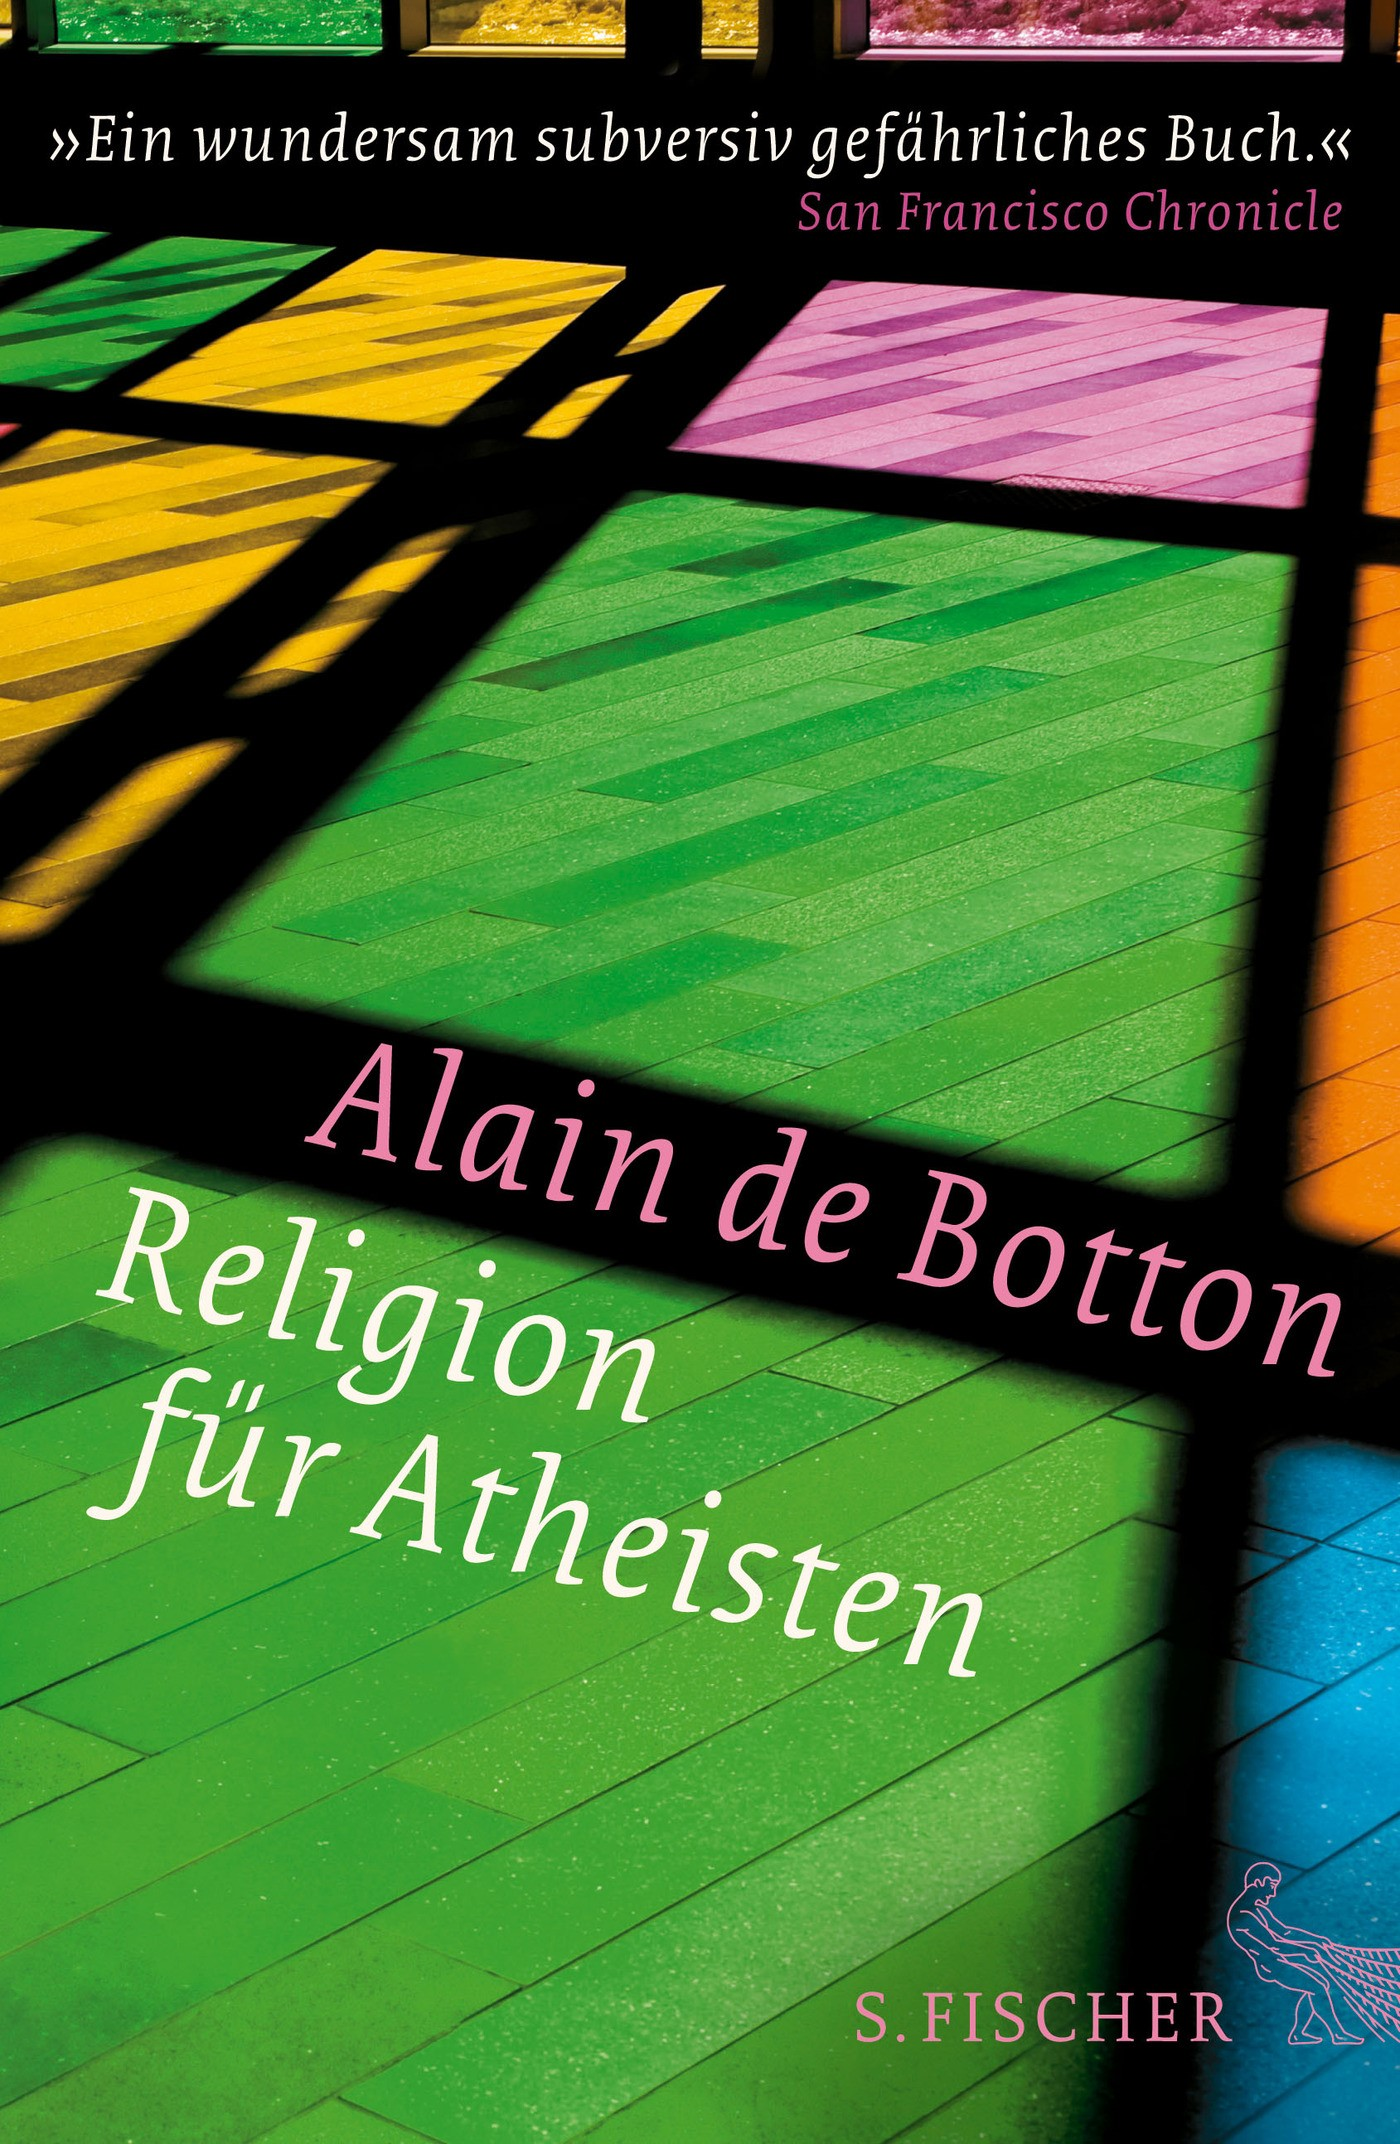 Religion für Atheisten | Botton, 2013 | Buch (Cover)